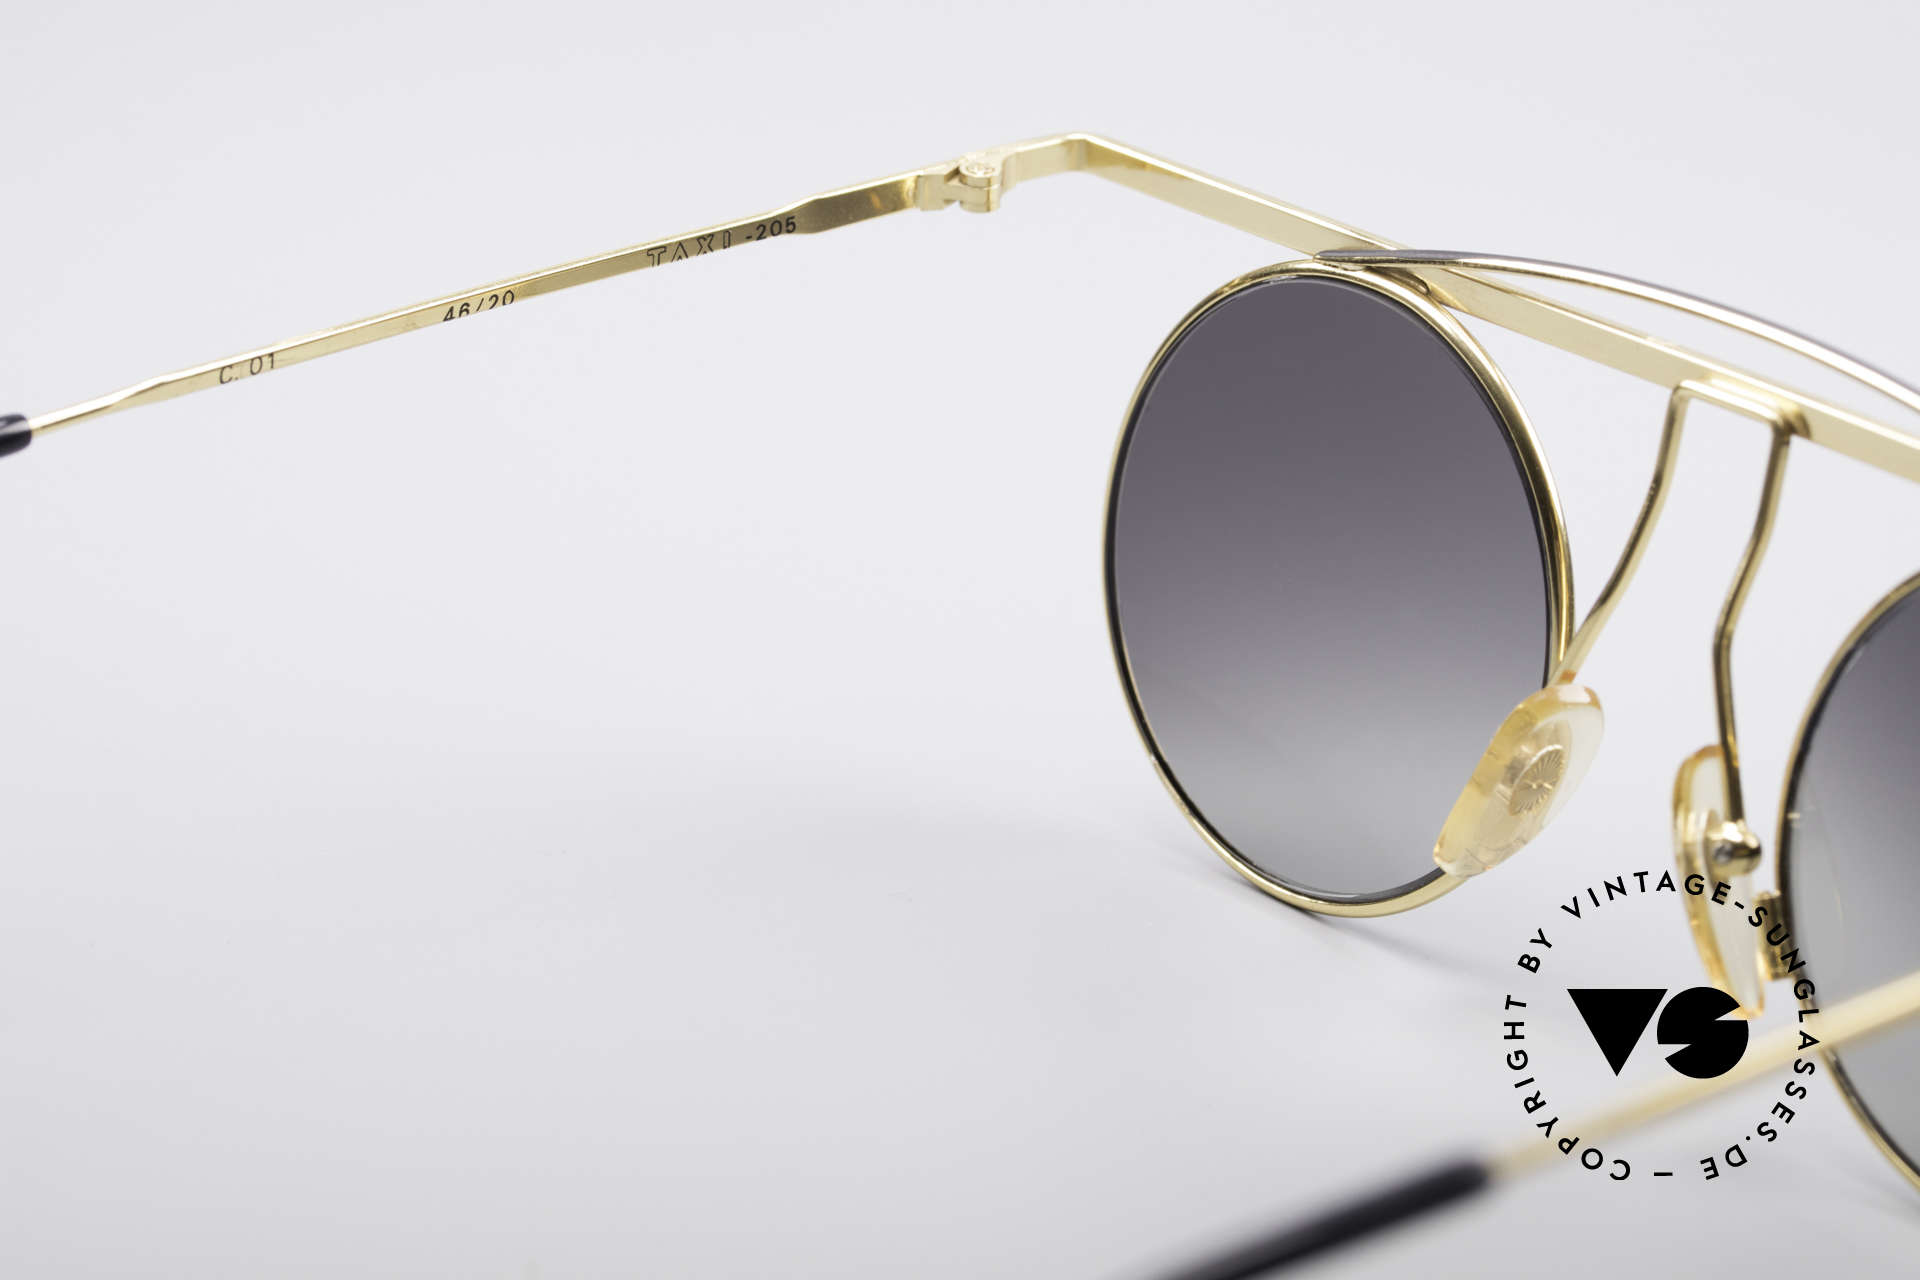 Taxi 205 by Casanova Art Sunglasses, the sun lenses could be replaced with optical lenses, Made for Women